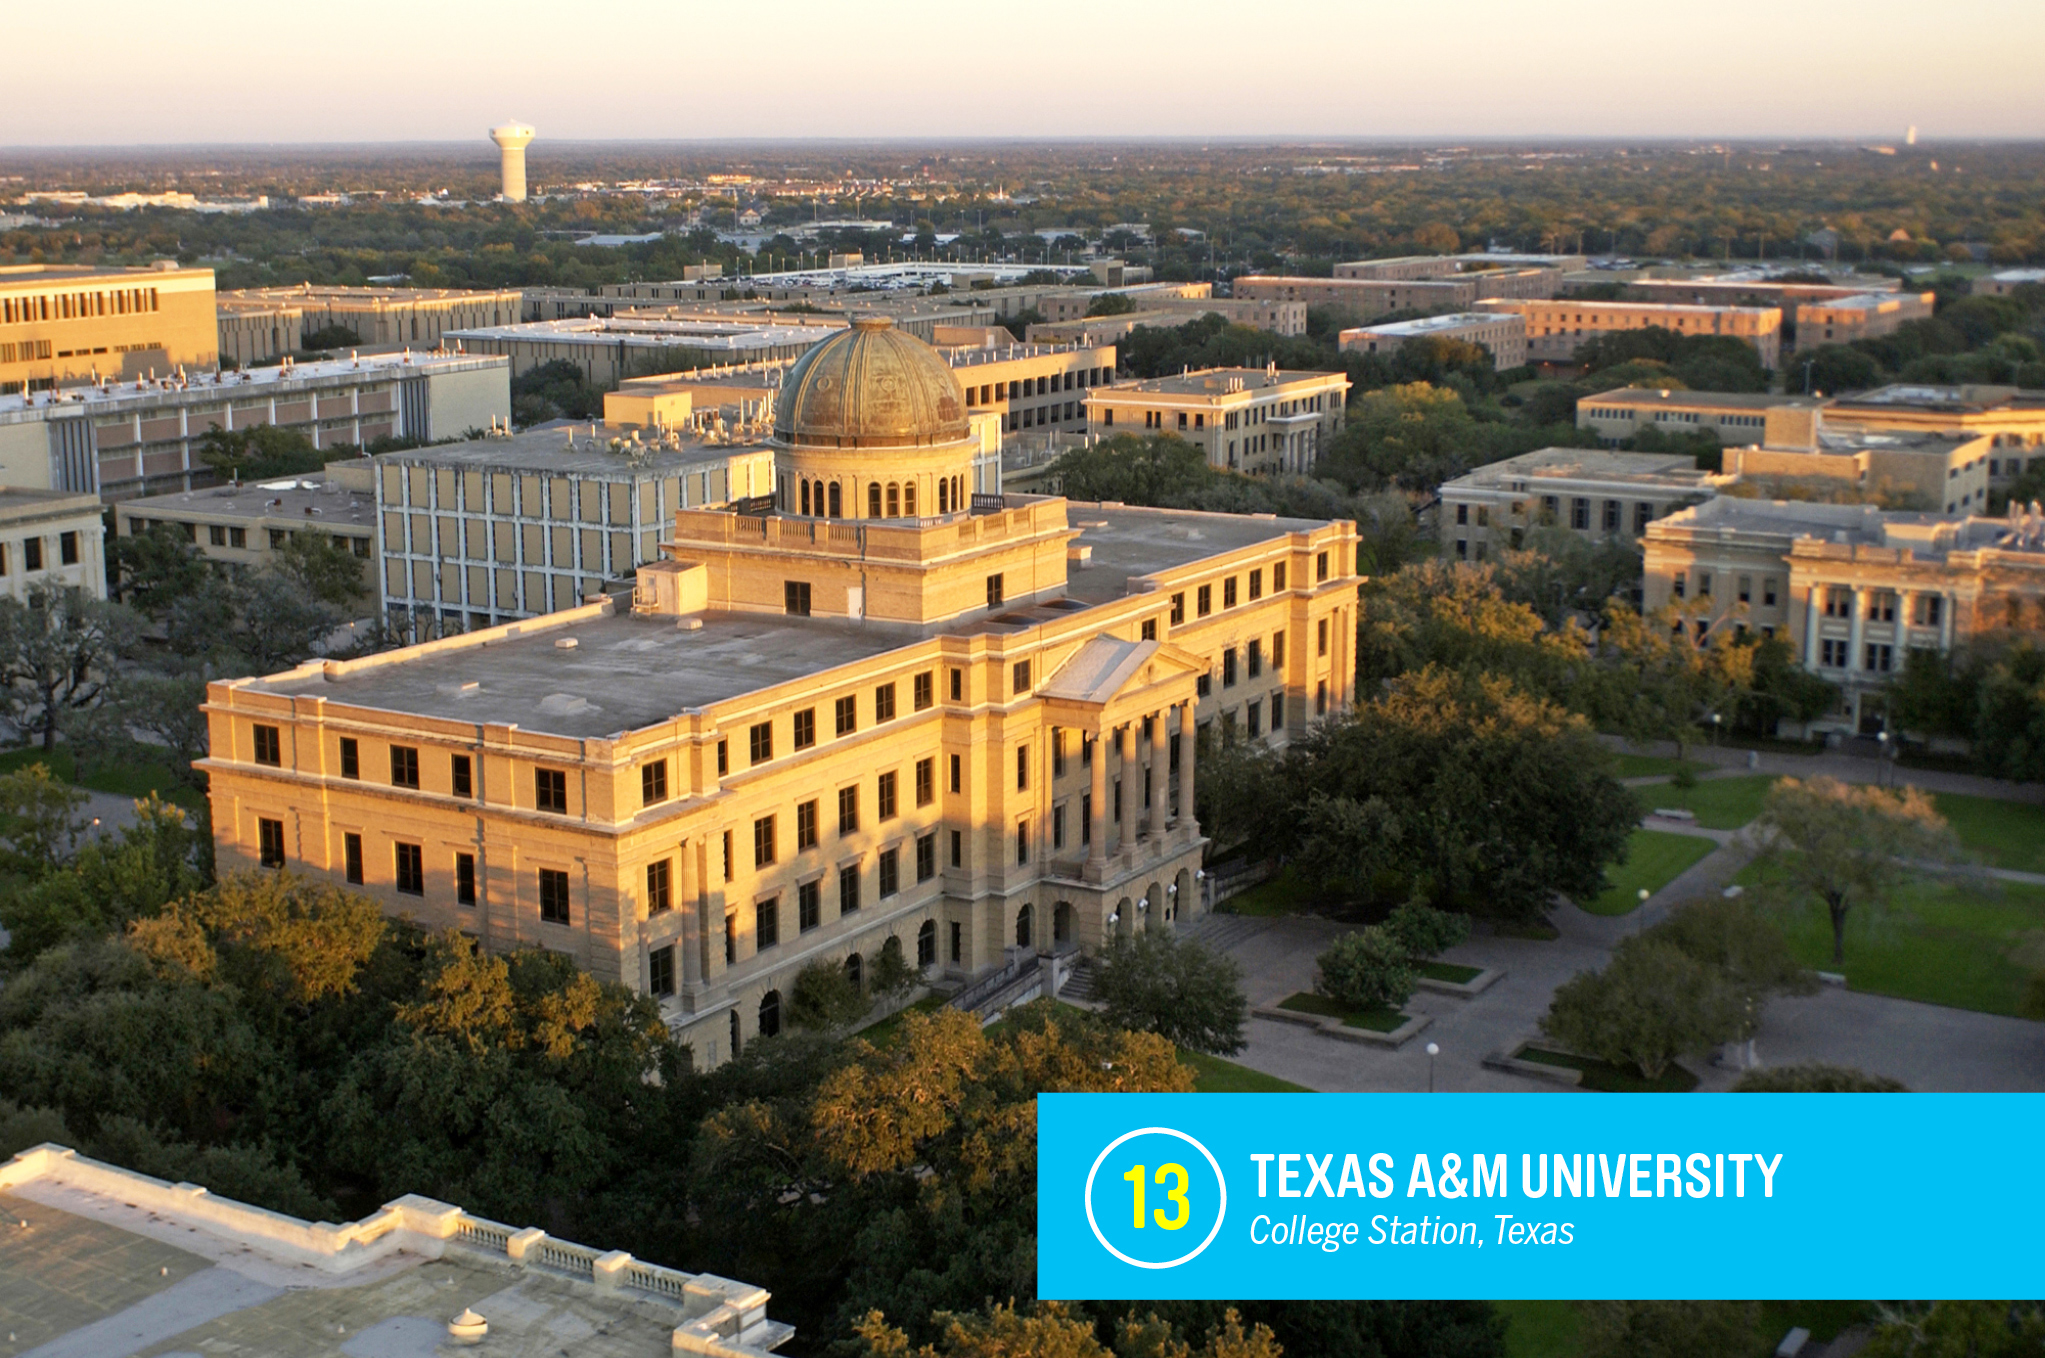 """<a href=""""https://money.com/best-colleges/profile/texas-a-and-m-university-college-station/"""" target=""""_blank"""">Texas A&amp;M</a> has one of the largest undergraduate student bodies in the country, with more the 40,000 students who graduate into an especially proud, loyal group of alumni. The college is well known for its business, agriculture, and engineering programs, as well as a recreation, park, and tourism management program. <a href=""""https://money.com/best-colleges/profile/texas-a-and-m-university-college-station/"""" target=""""_blank"""">FULL PROFILE</a>"""